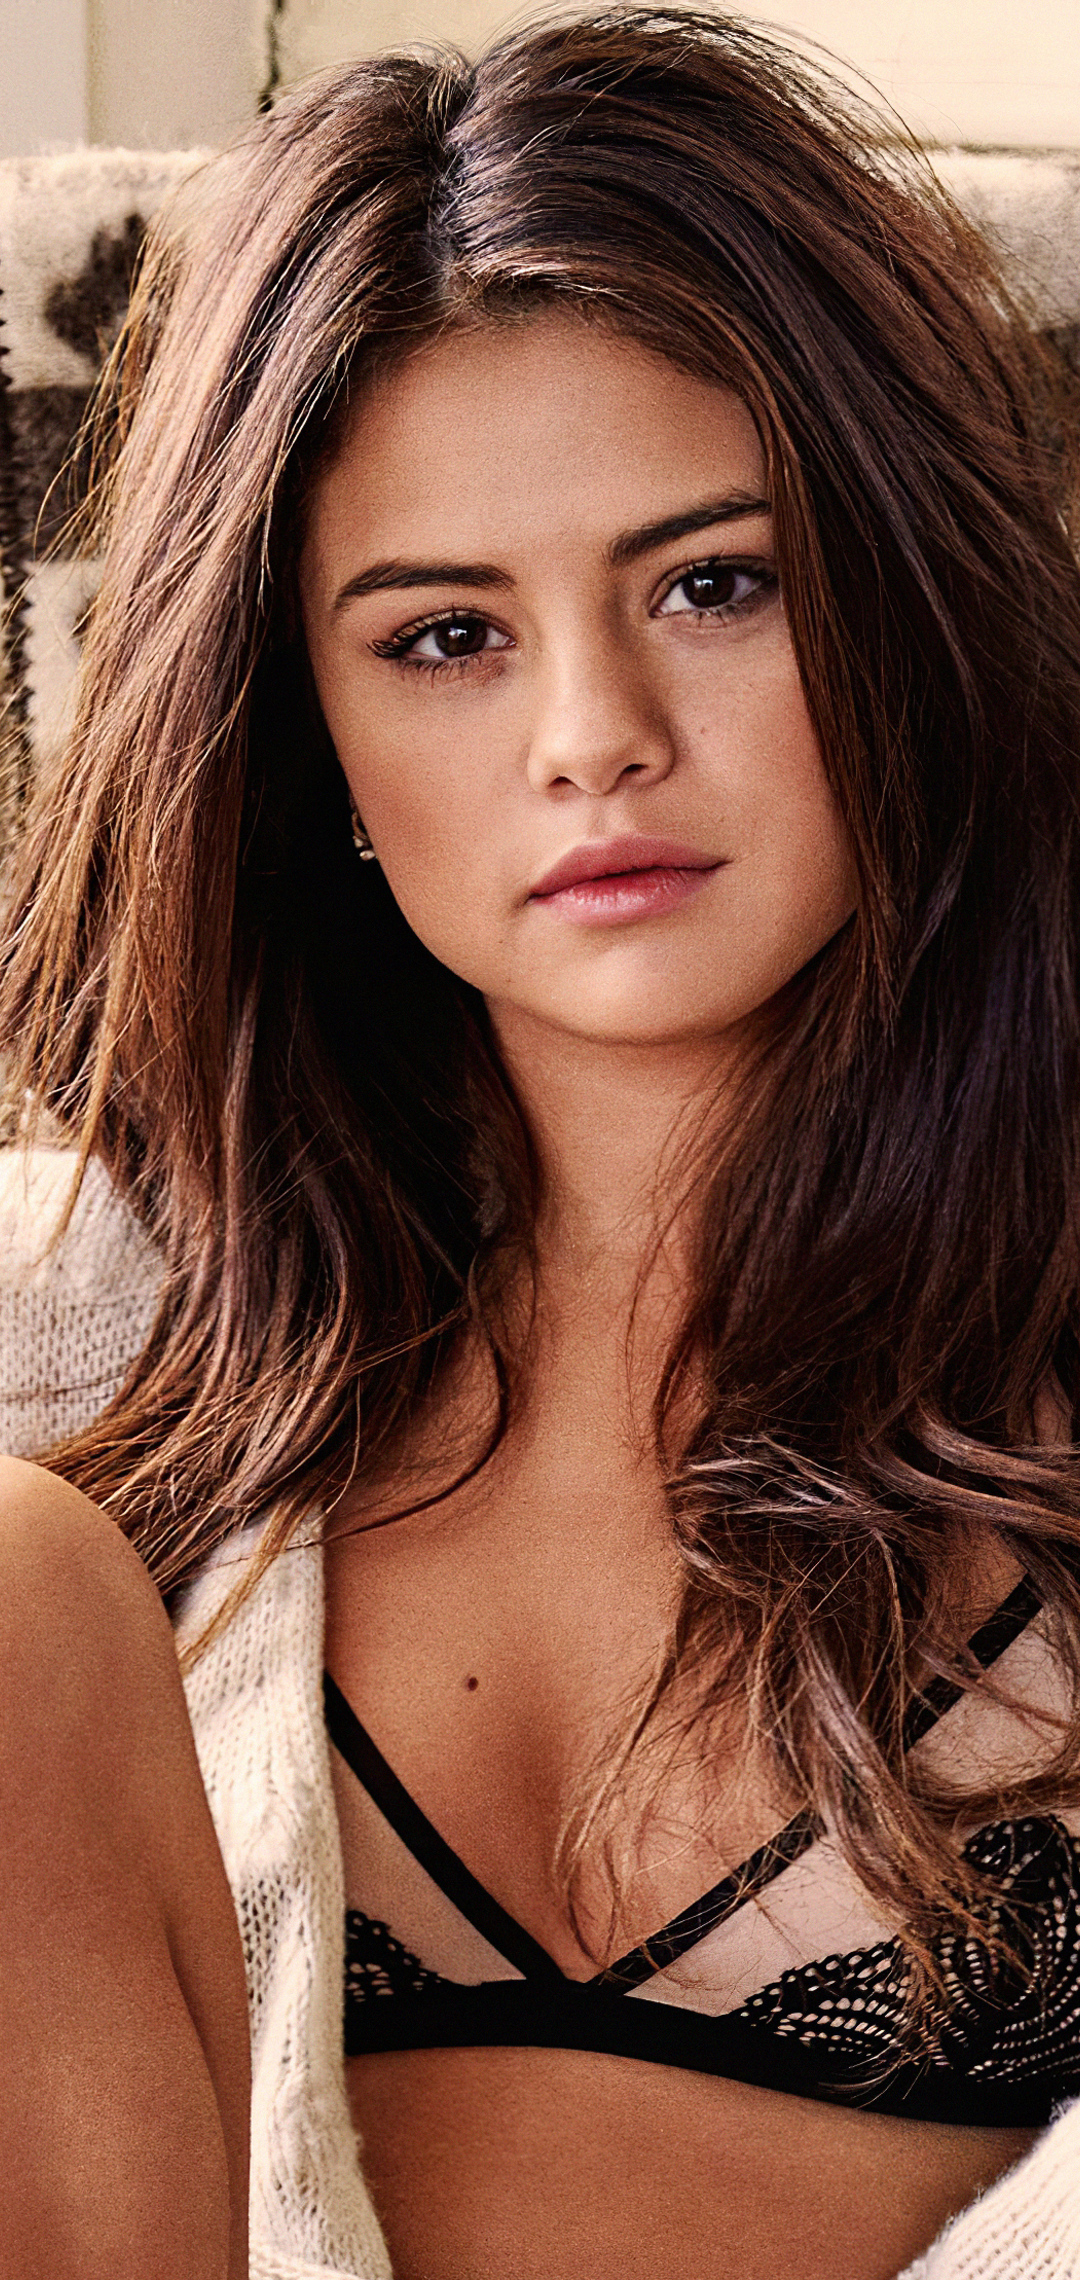 selena-gomez-new-2019-photoshoot-x0.jpg